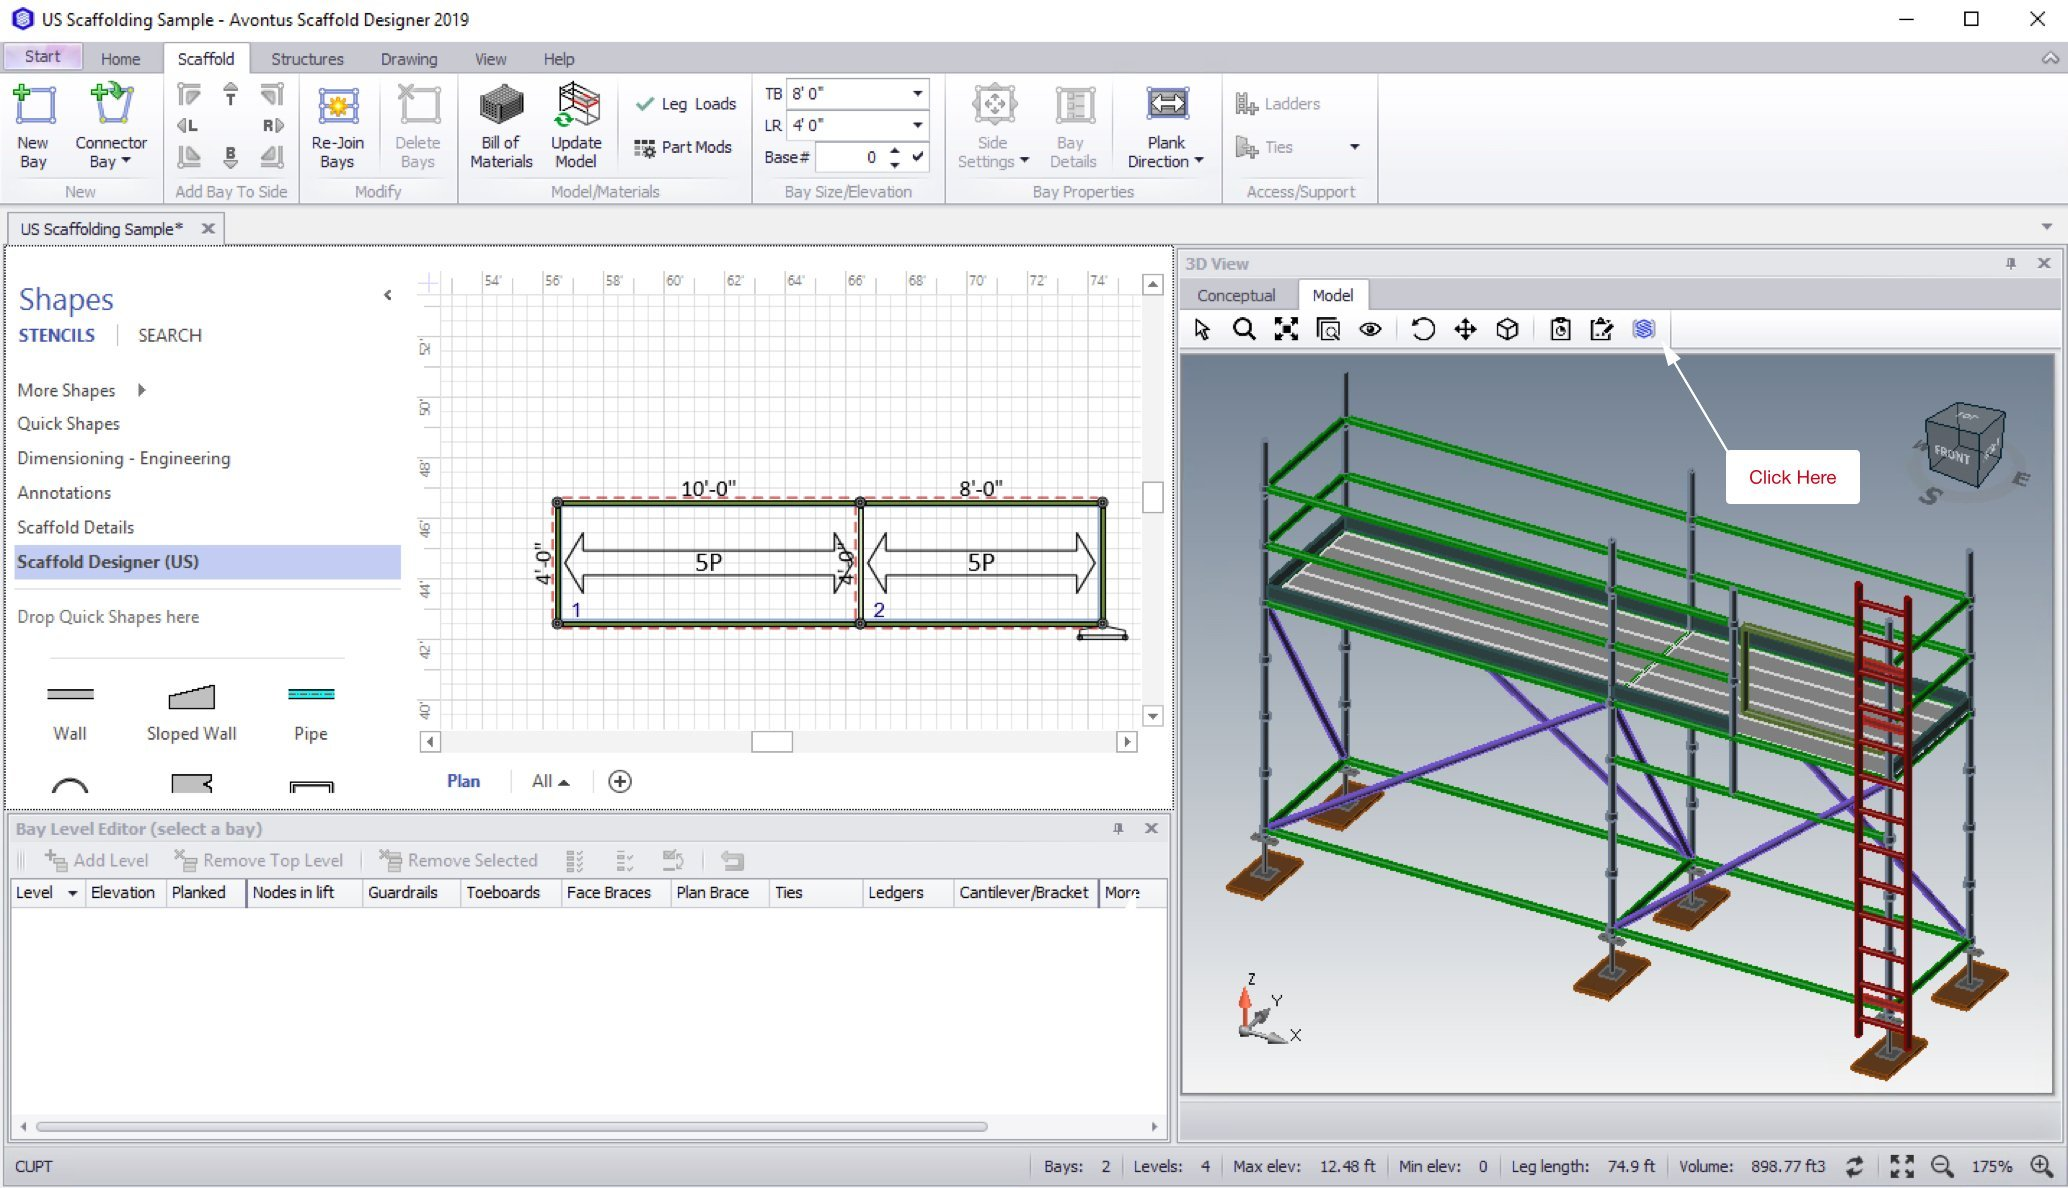 Launch Avontus Designer, open a drawing, select the Model tab in the 3D view window and select the Avontus Viewer icon.